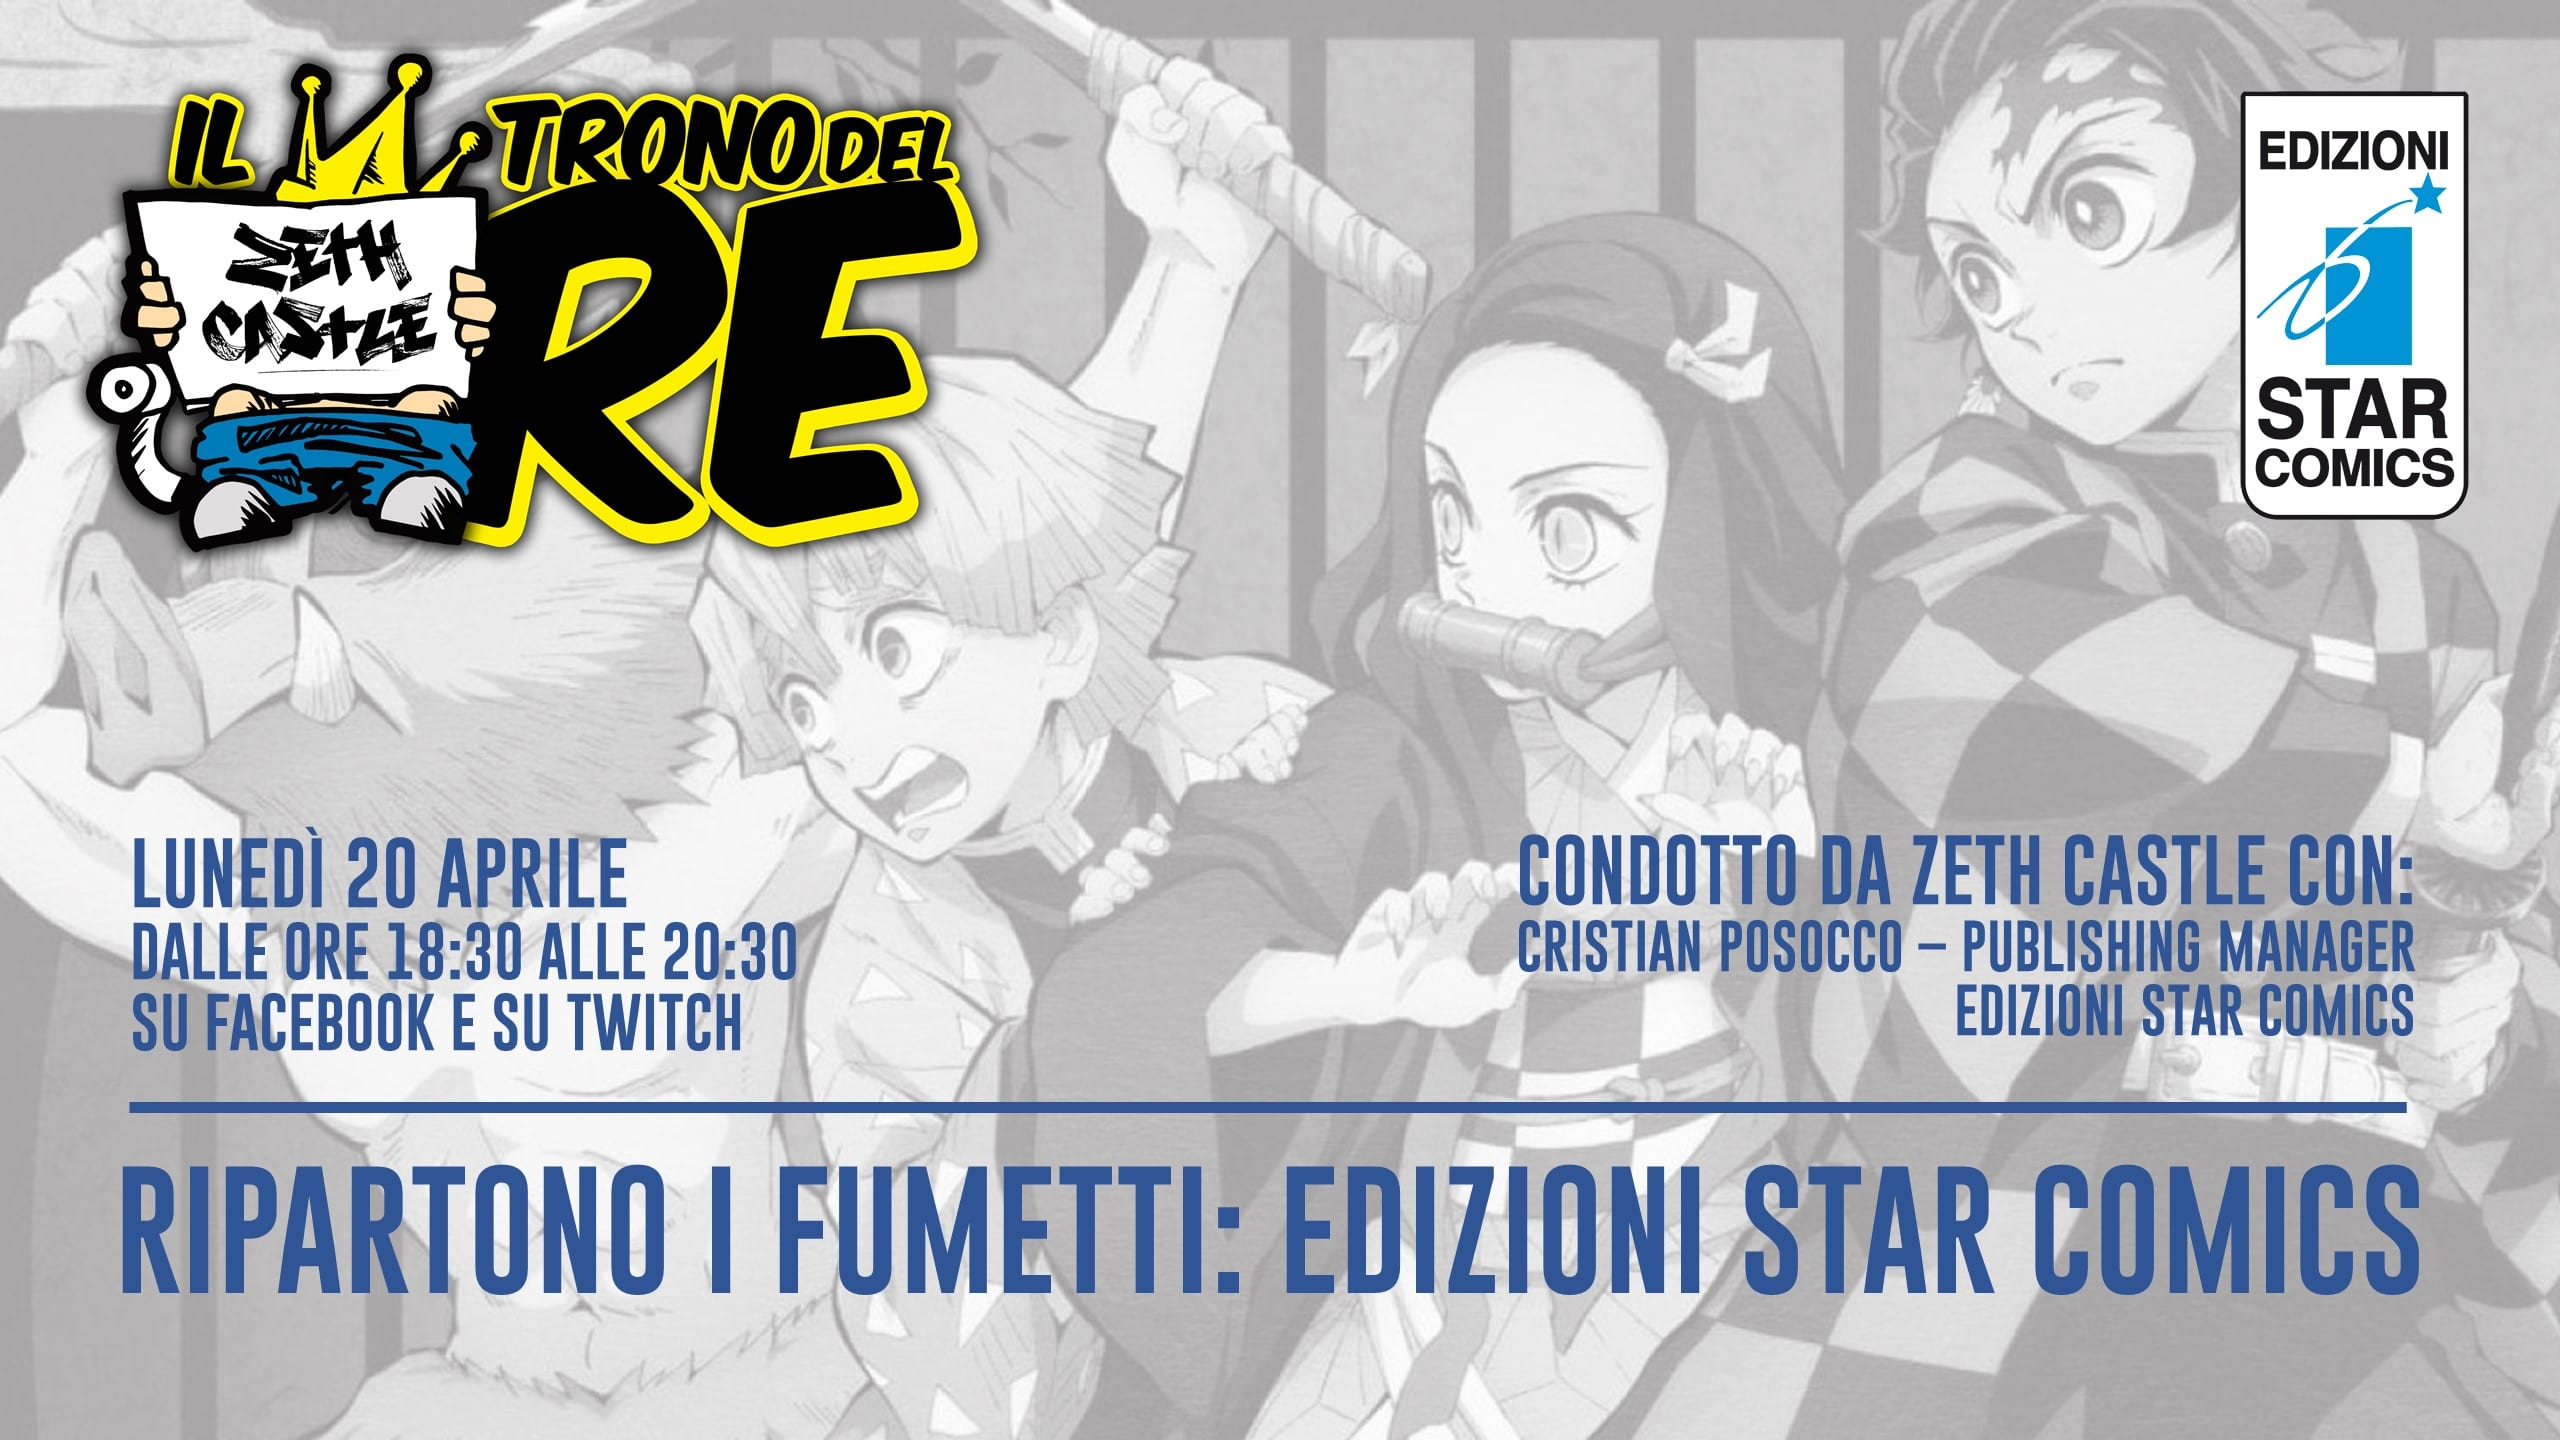 Il Trono del Re: Speciale Star Comics